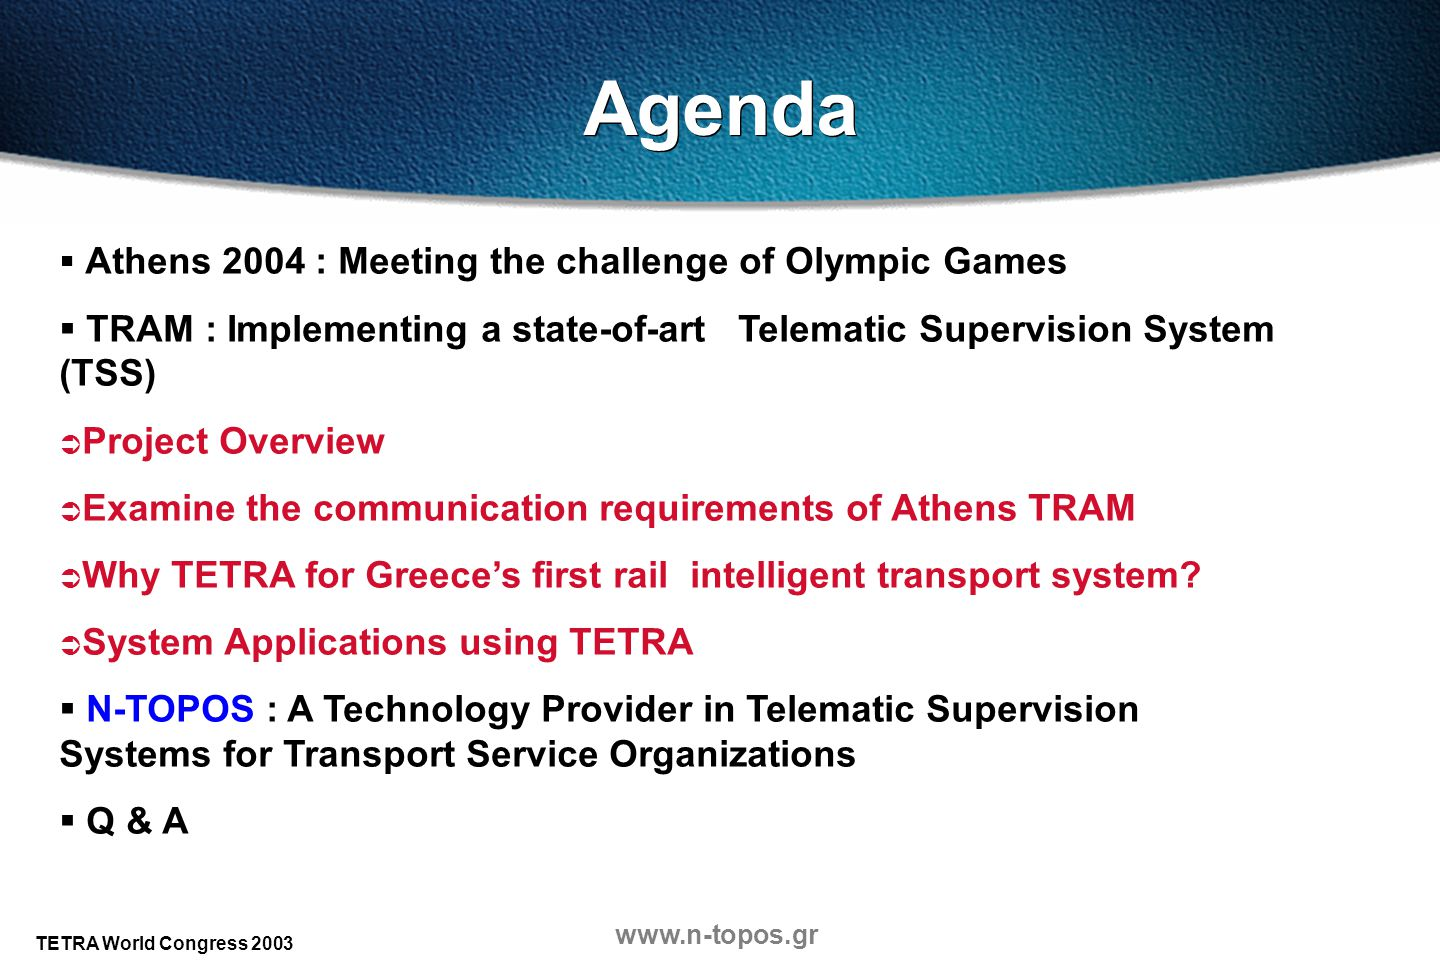 Agenda Athens 2004 : Meeting the challenge of Olympic Games. TRAM : Implementing a state-of-art Telematic Supervision System (TSS)